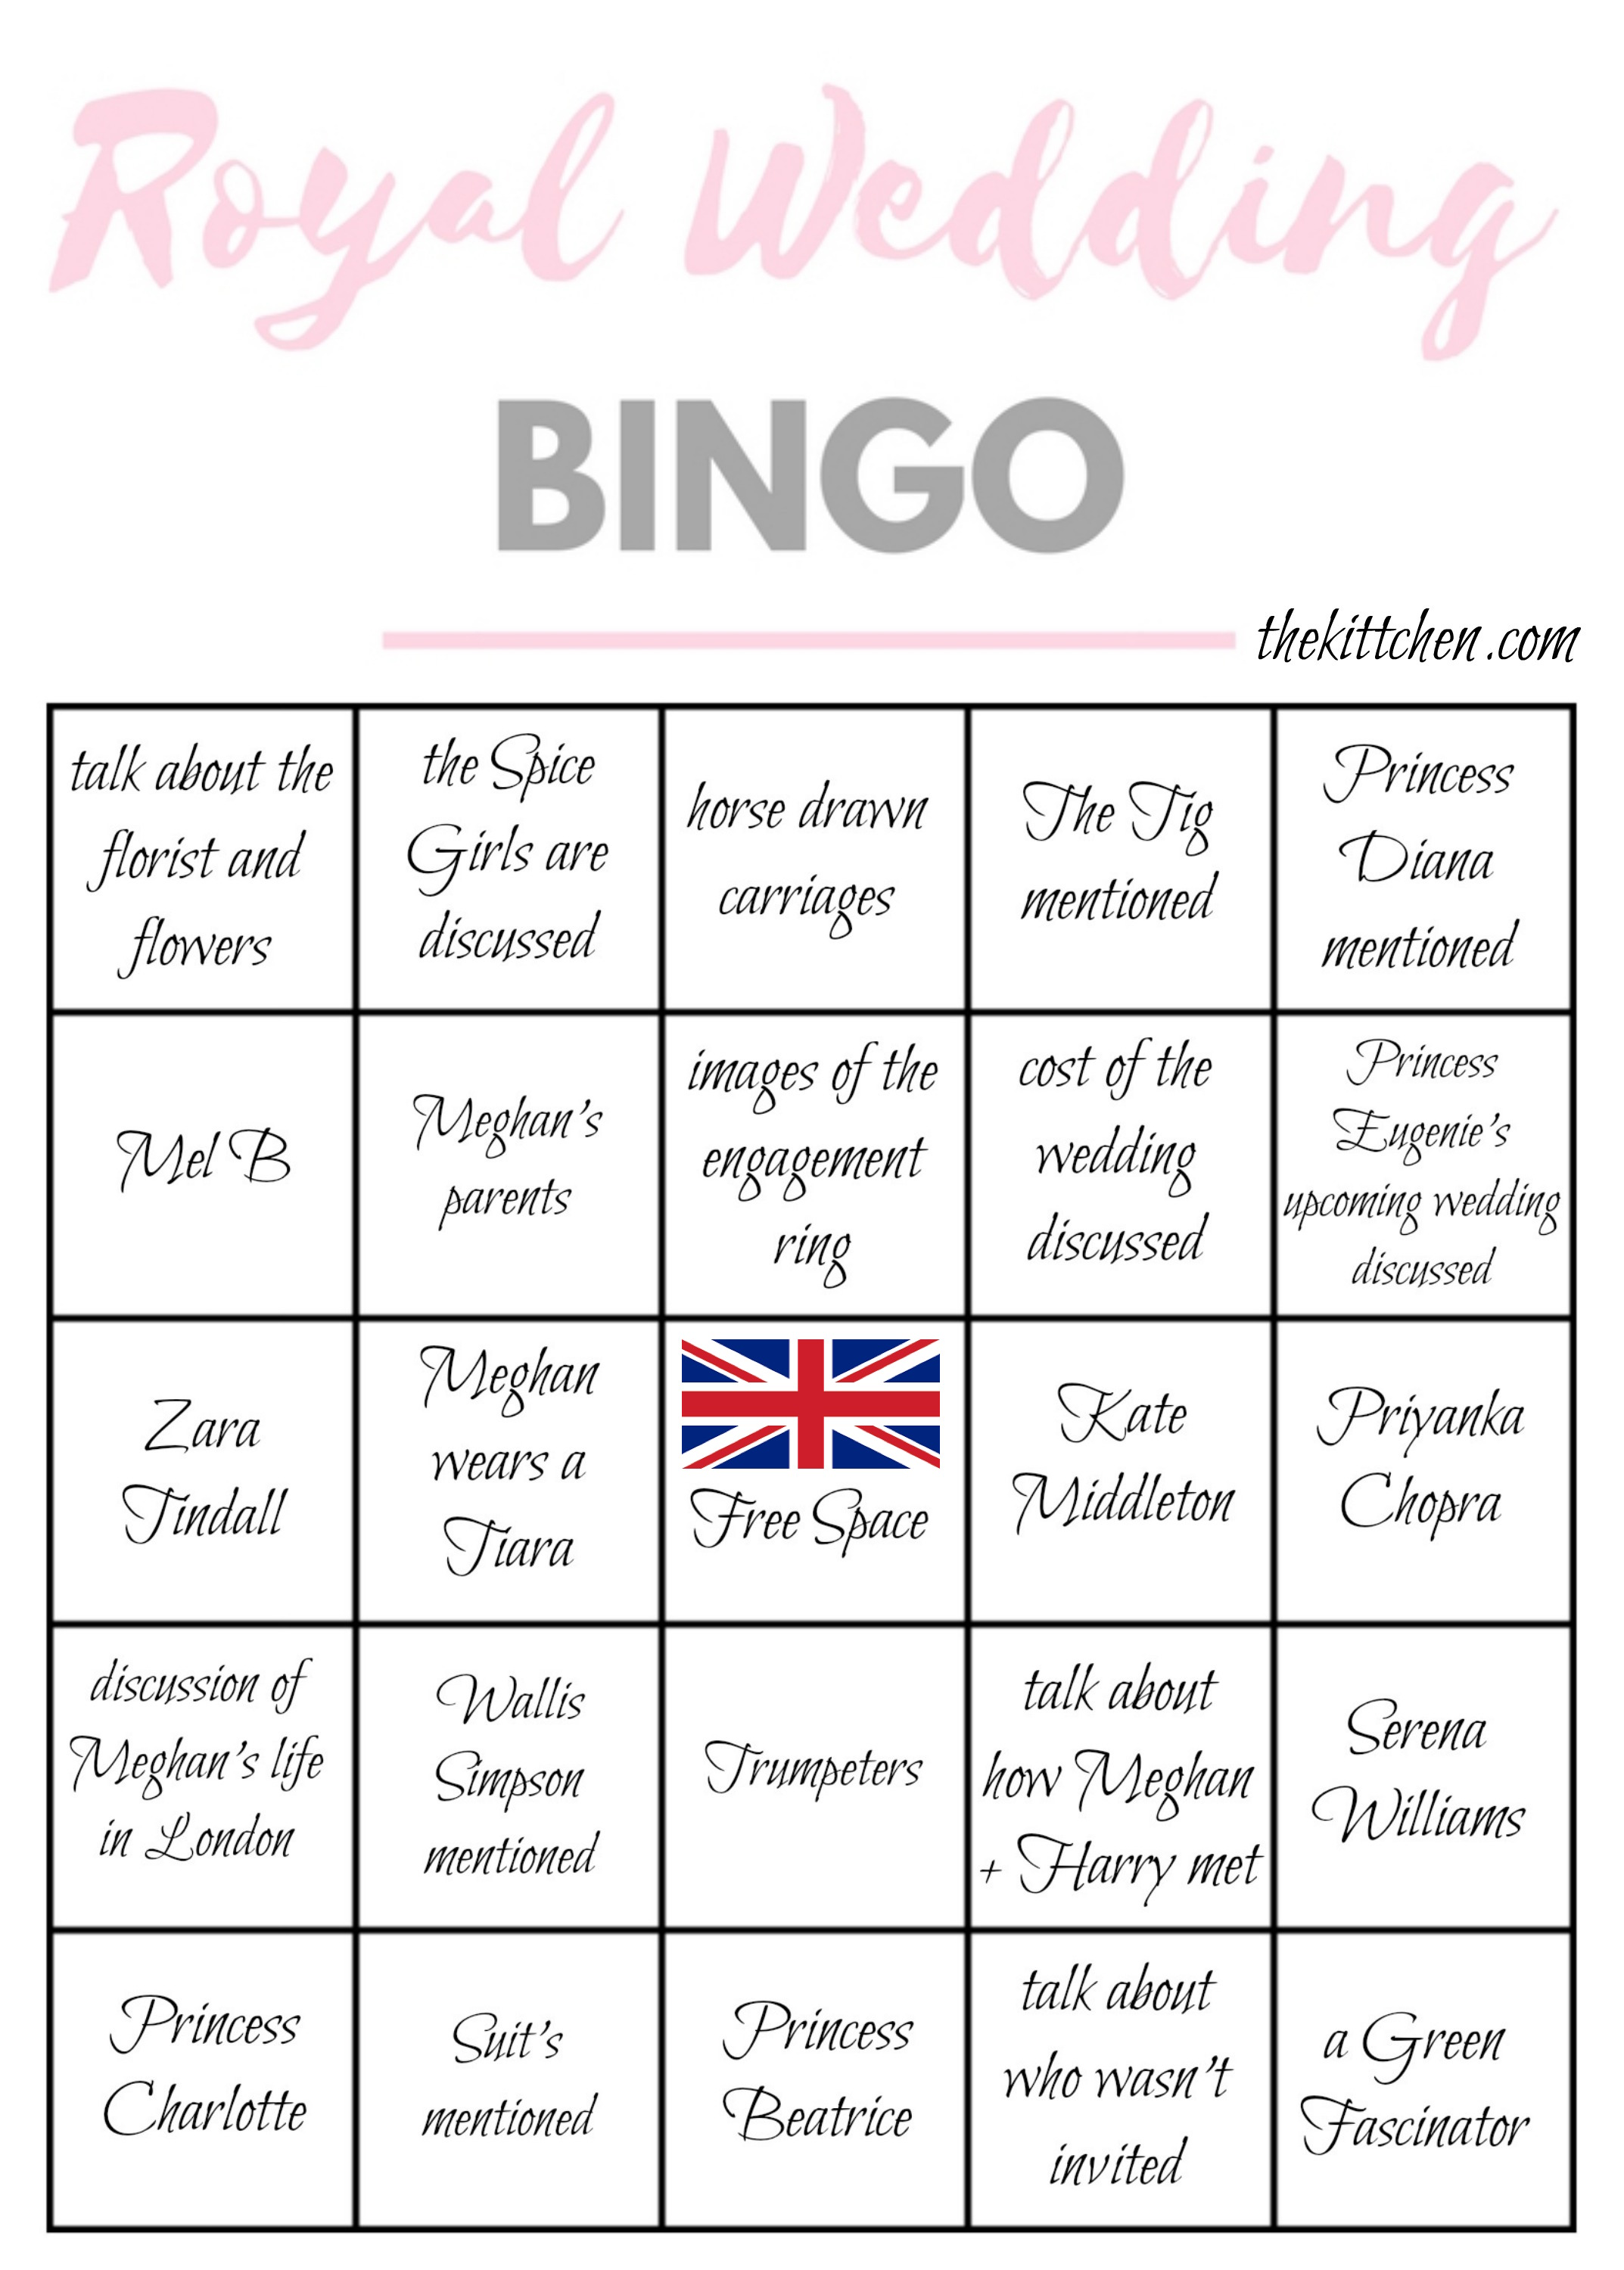 A Royal Wedding Watch Party Royal Wedding Bingo Thekittchen